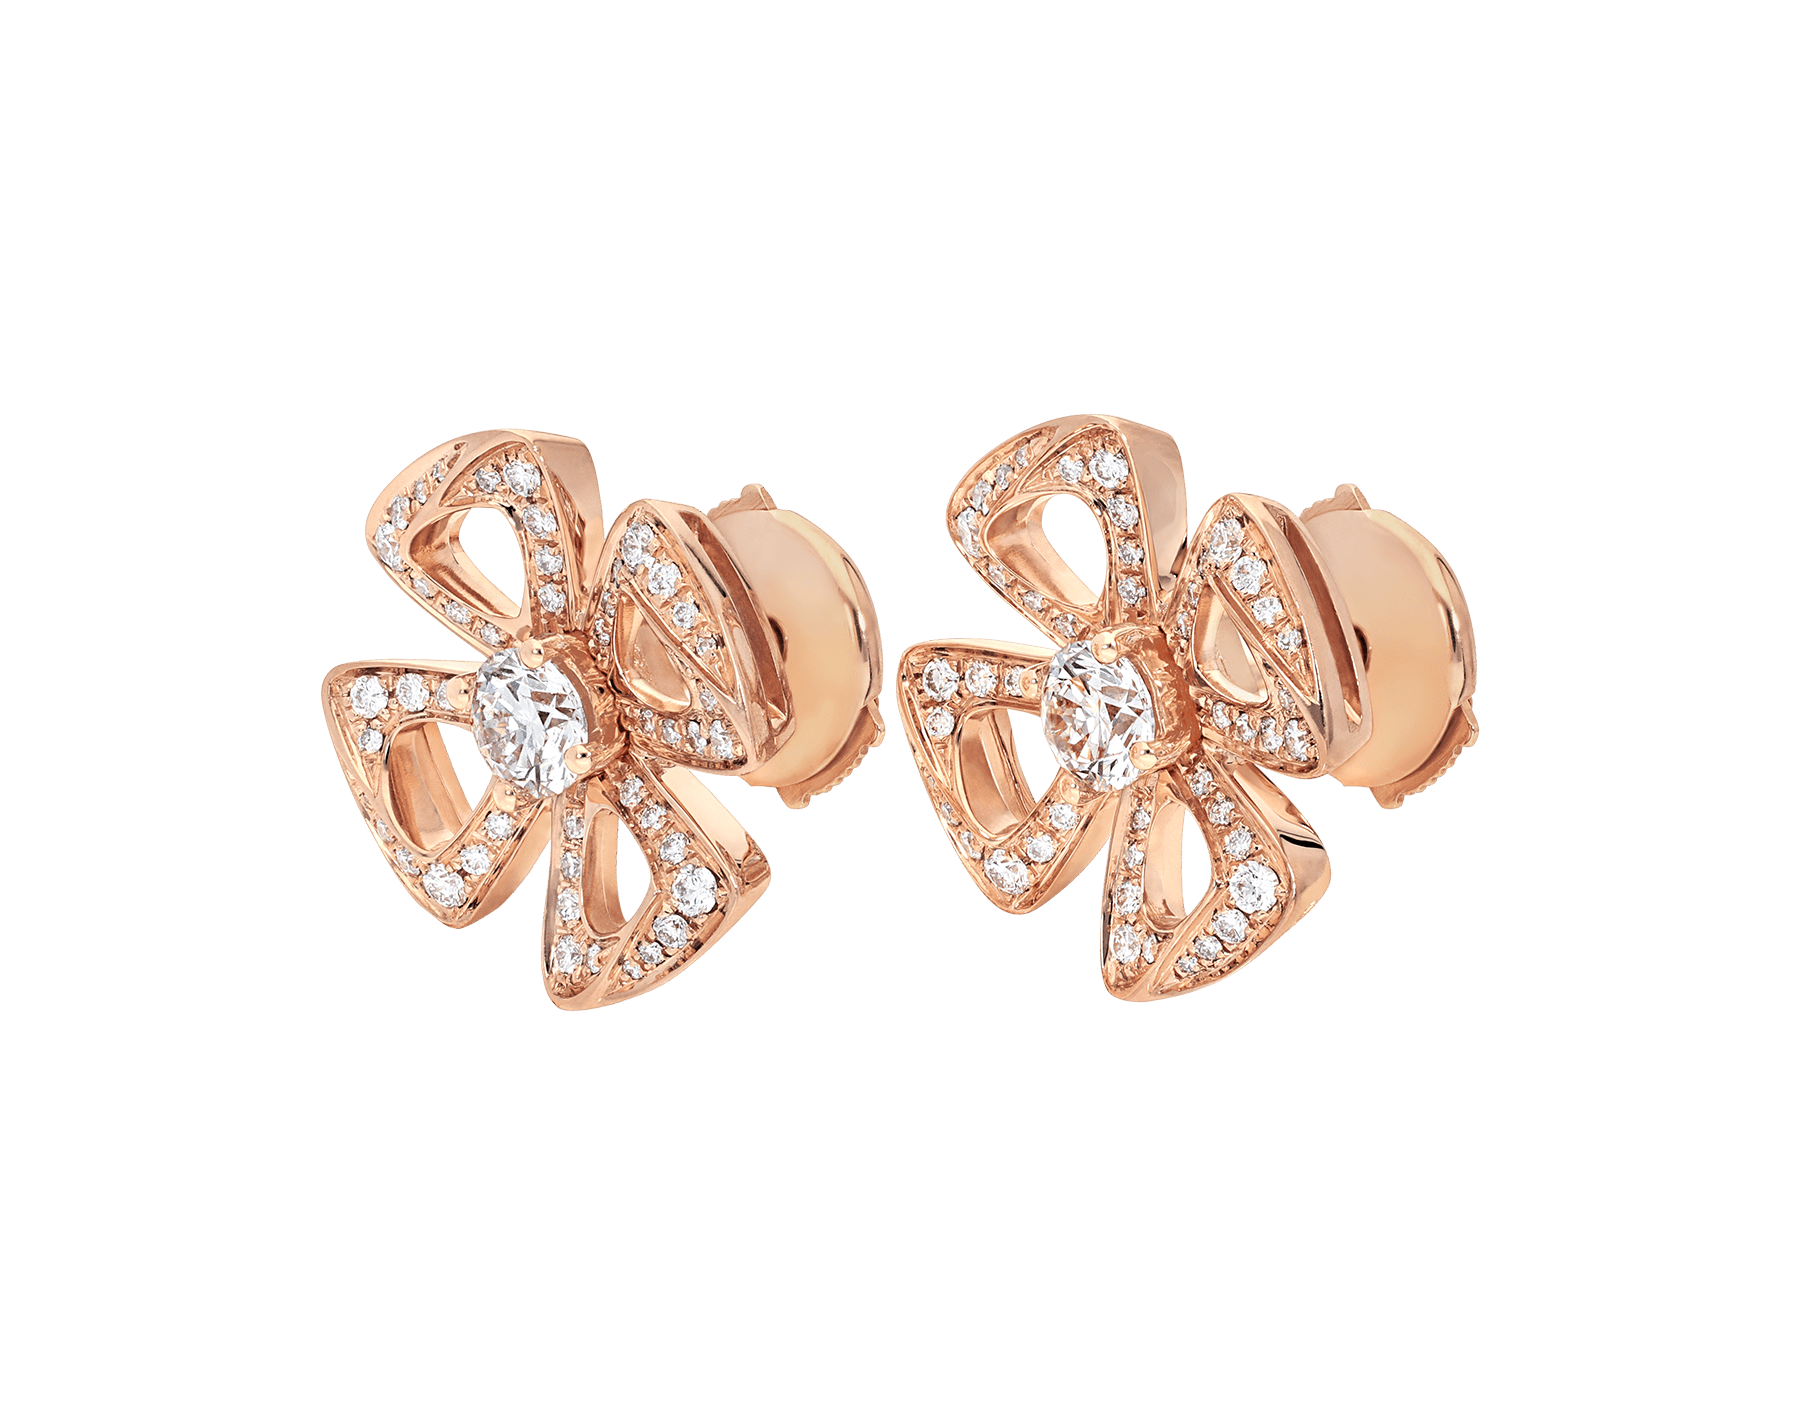 Fiorever 18 kt rose gold earrings set with two central diamonds (0.20 ct each) and pavé diamonds (0.33 ct) 355887 image 2